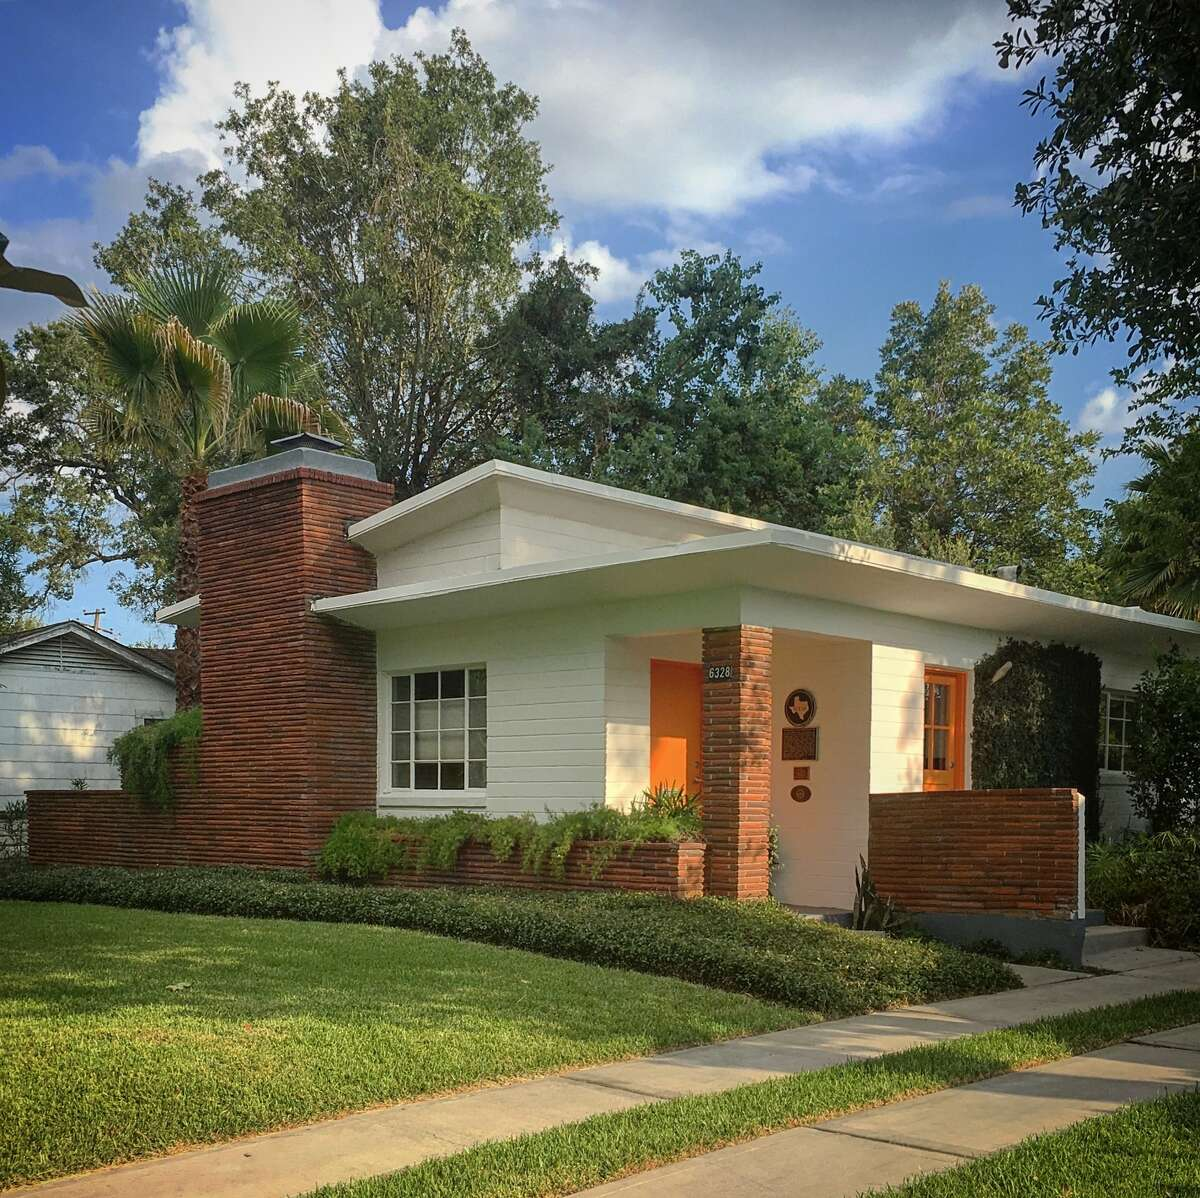 The Minella House was a 1950s effort to use concrete as an alternative to wood-frame homes. Ben Koush's restoration of this home won a 2017 Preservation Award from Houston Mod.